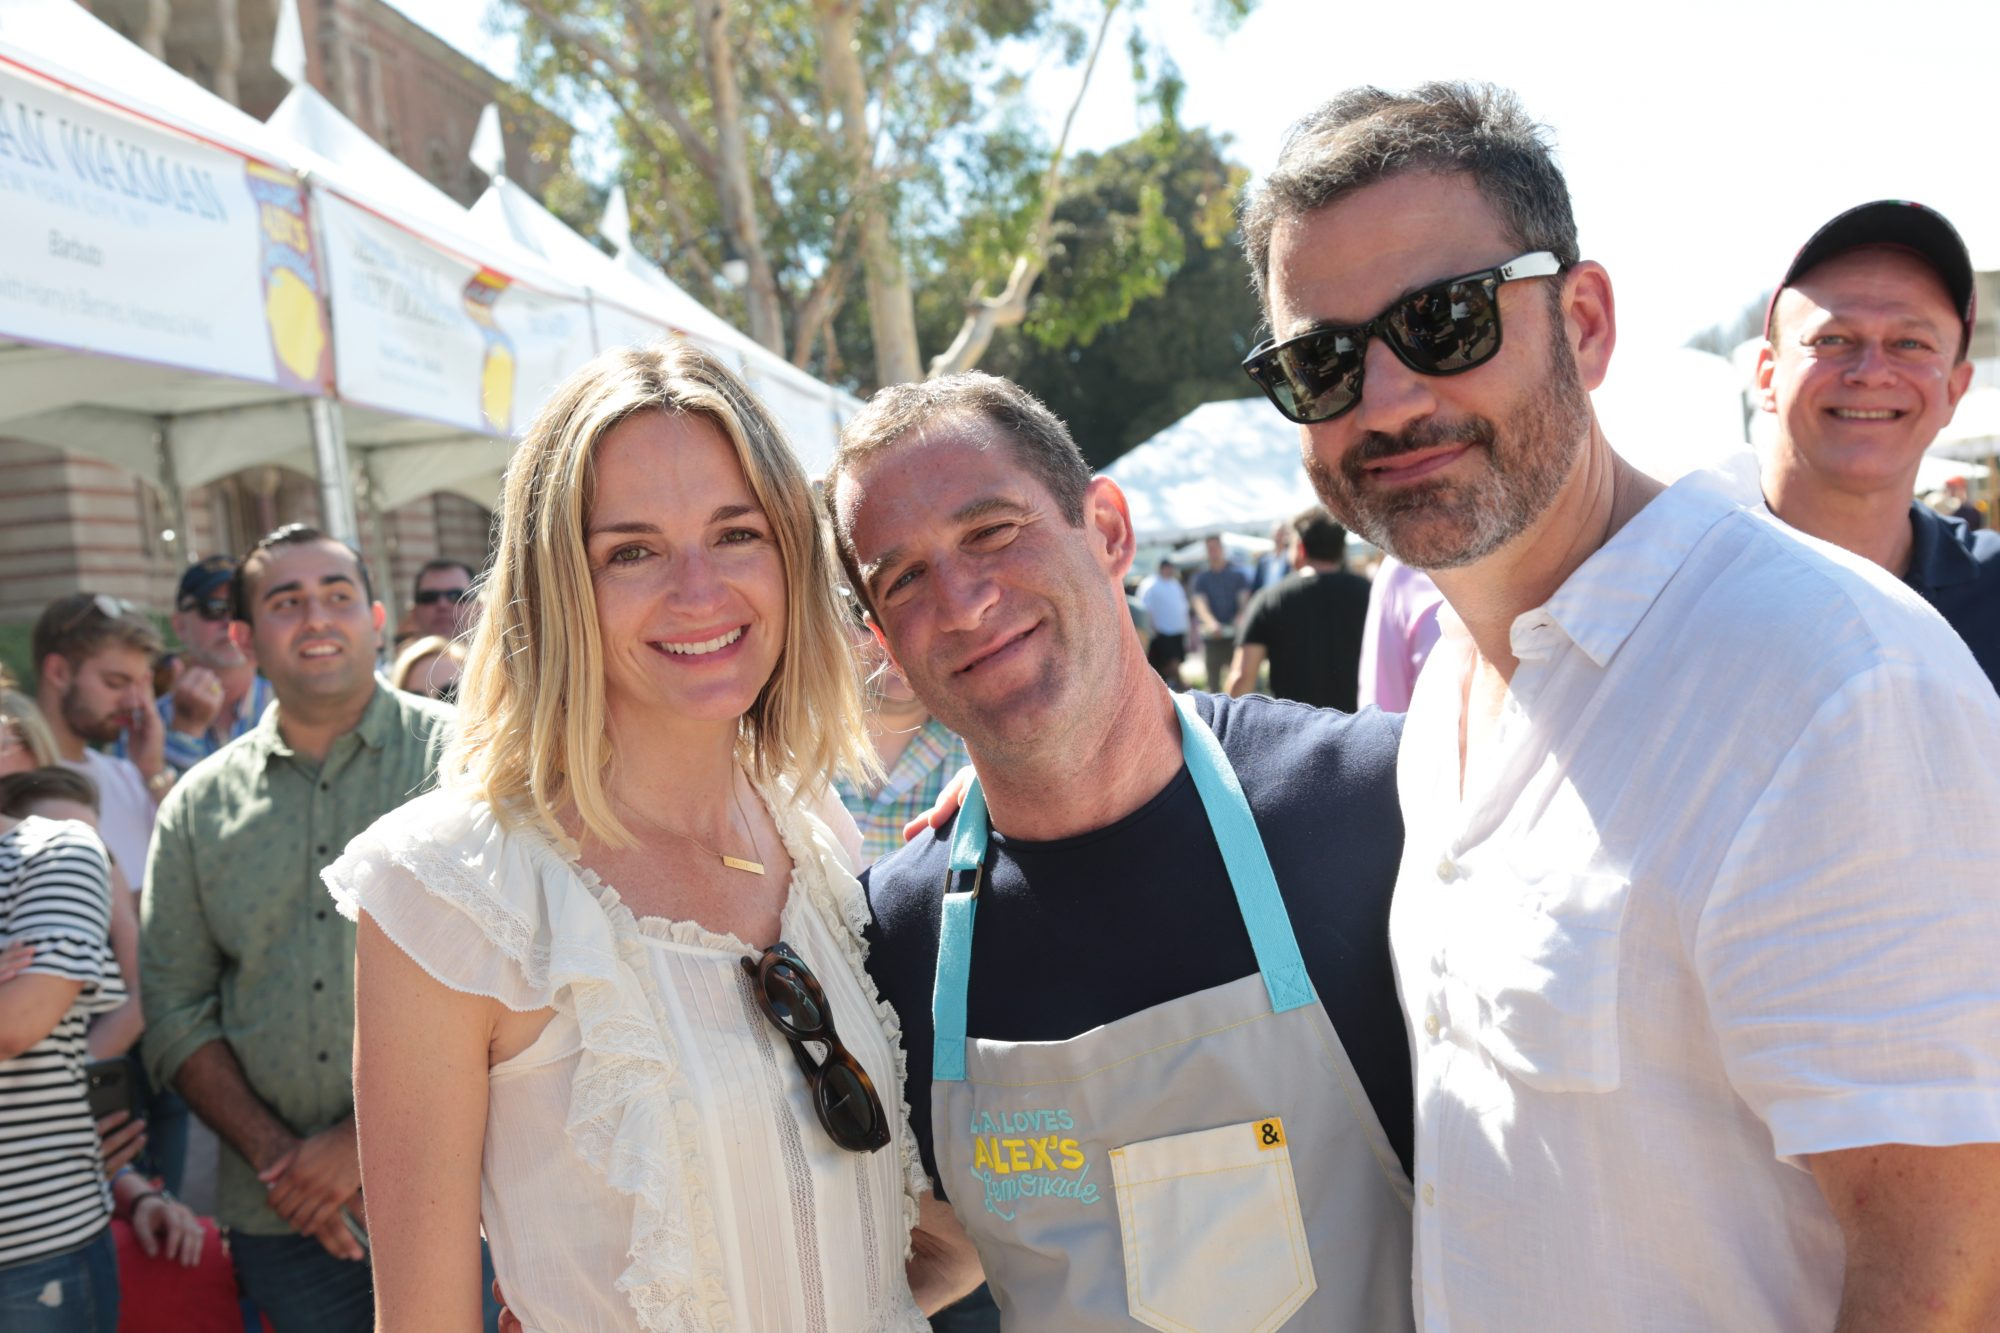 Jimmy Kimmel and L.A.'s Top Chefs Raise Almost $1.5 Million to Fight Children's Cancer